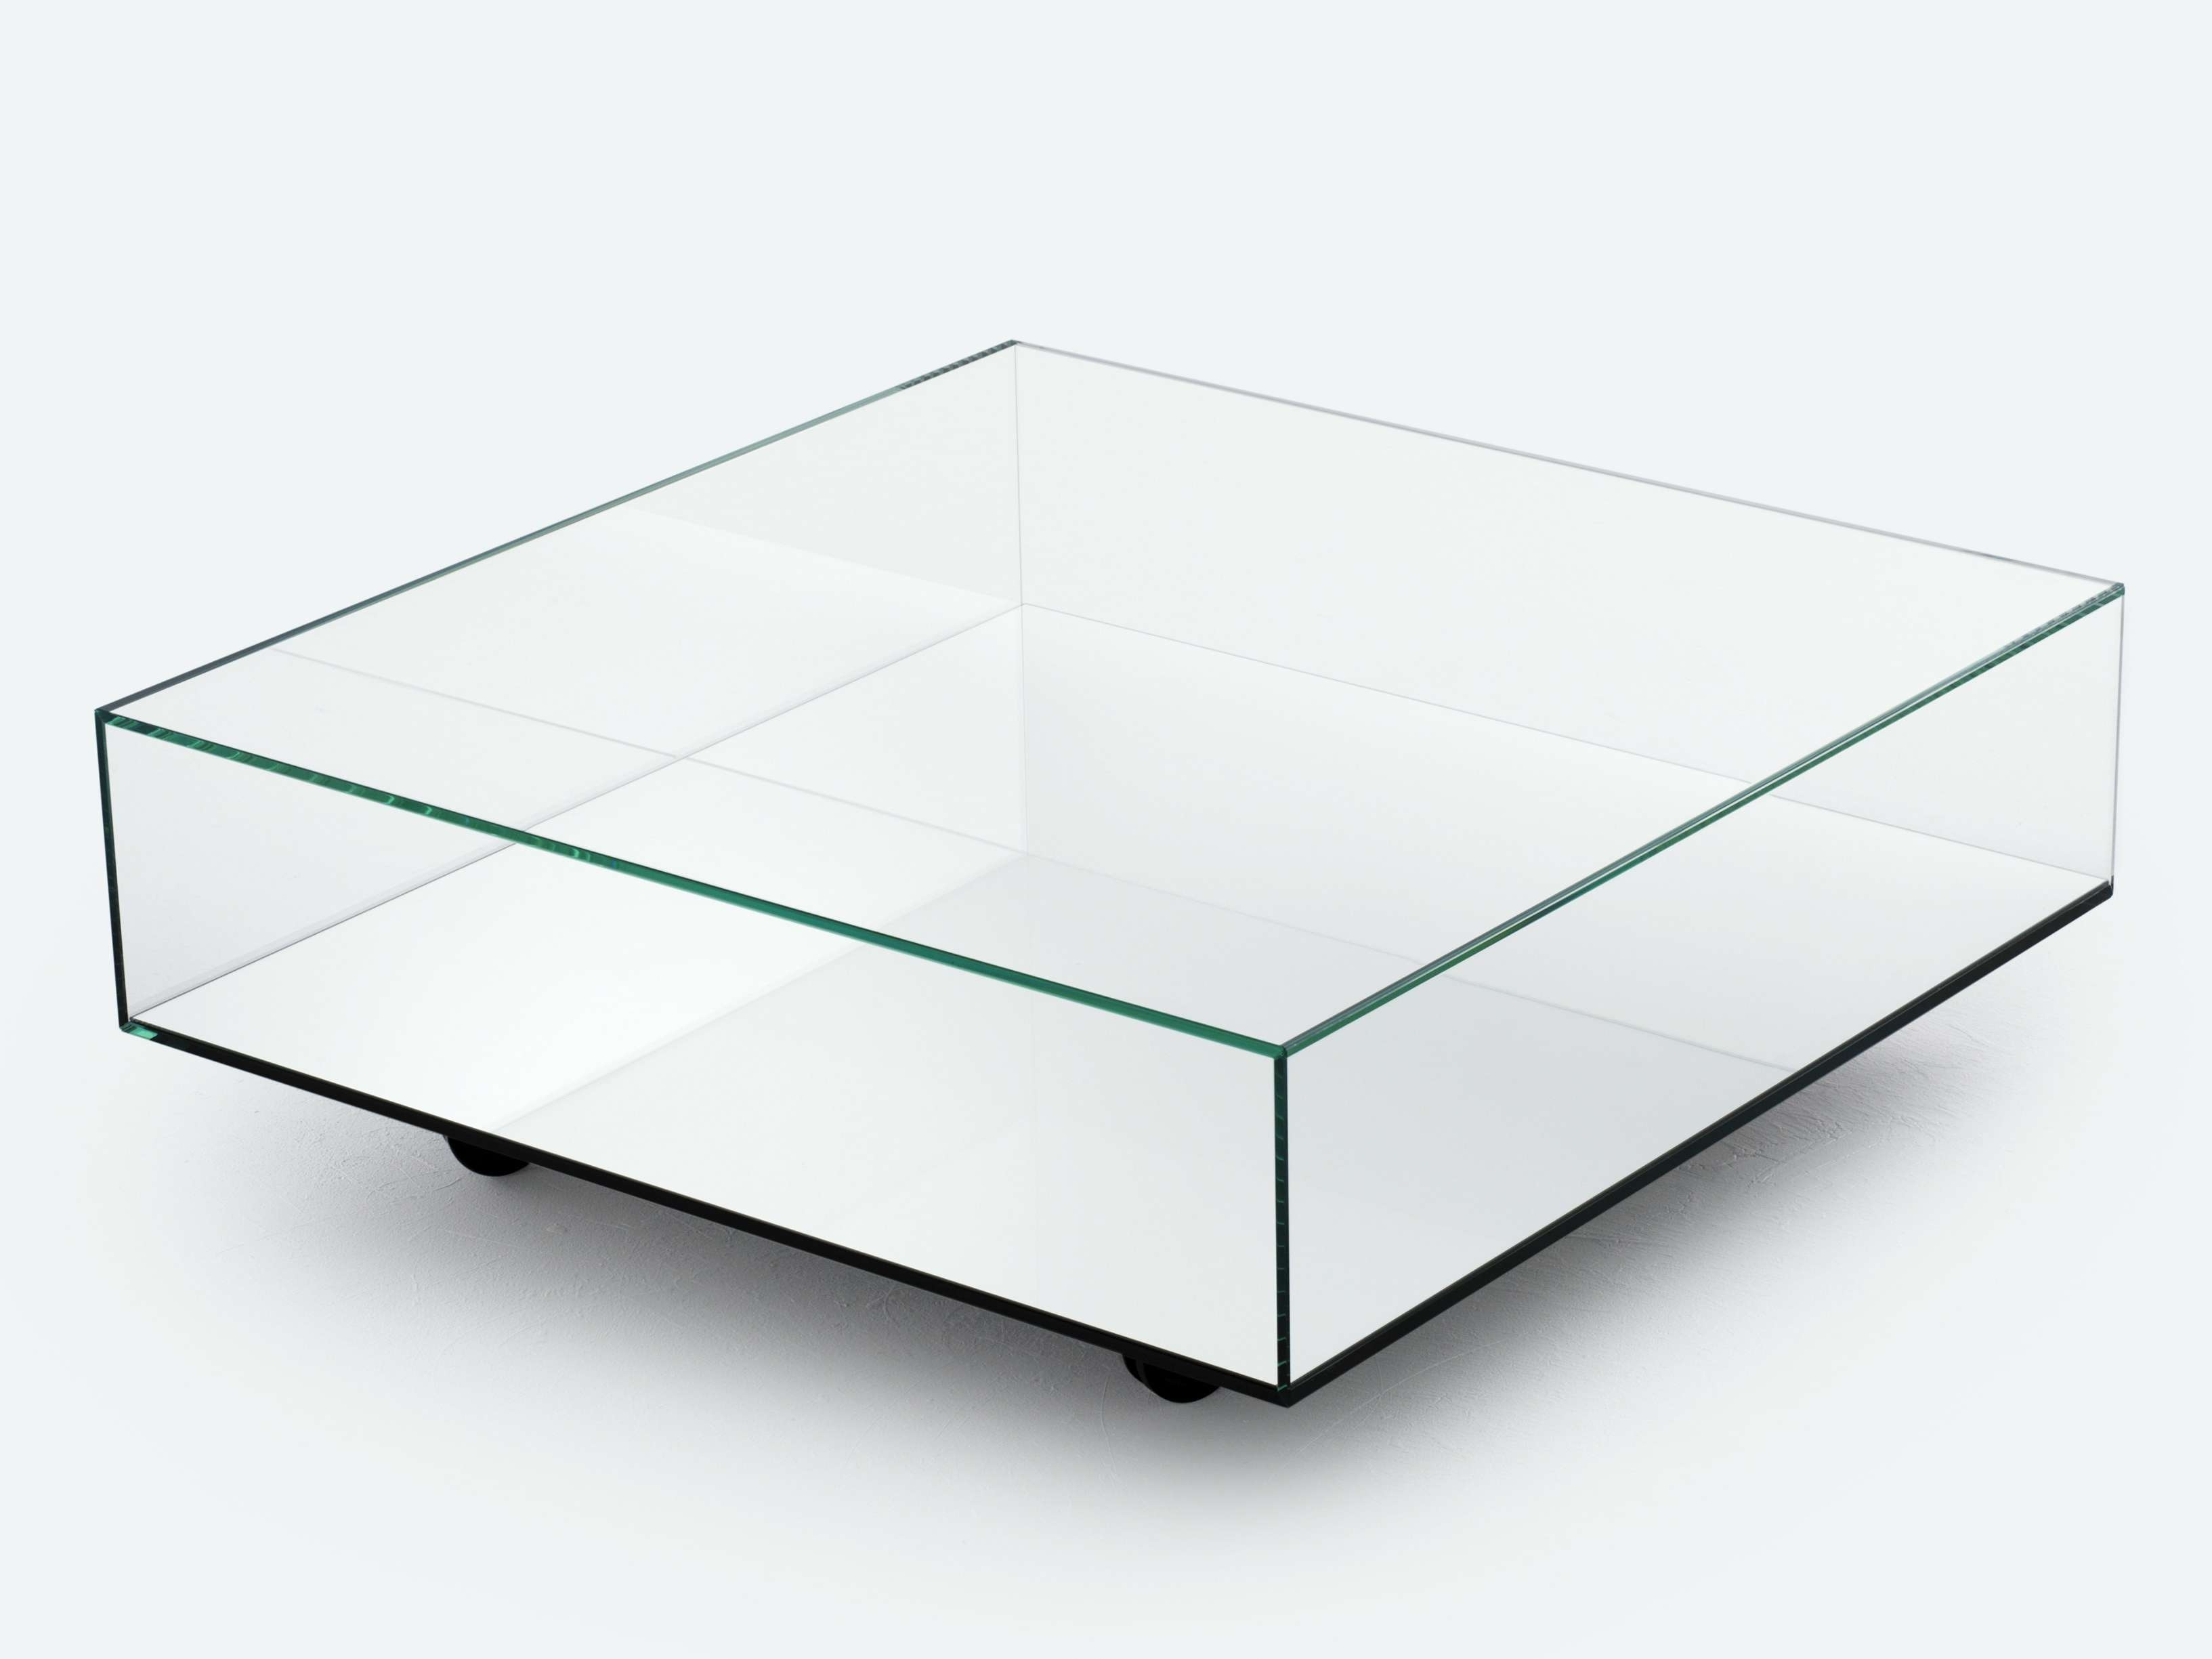 Square Low Profile Mirrored Glass Top Coffe Table With Storage And Regarding Most Popular Low Coffee Tables With Storage (View 20 of 20)